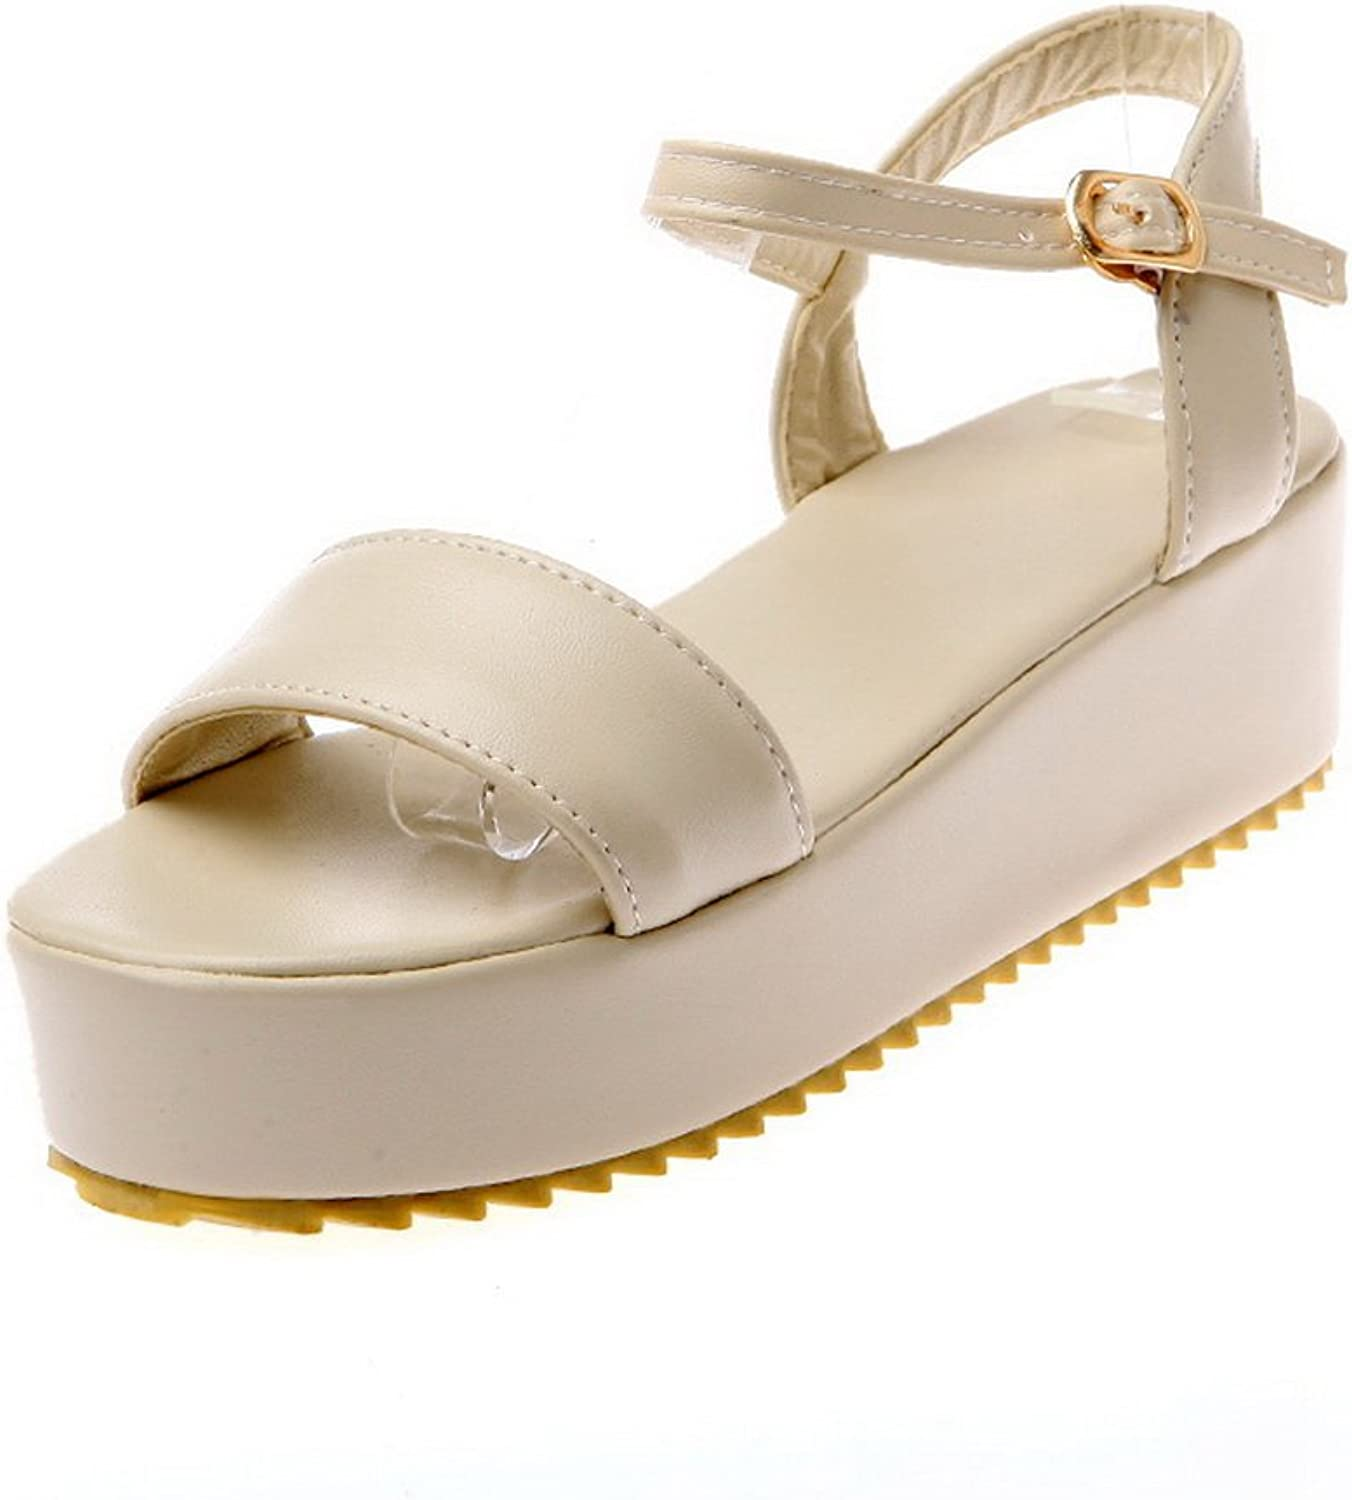 1TO9 Womens Puncture-Resistant Non-Marking Cold Lining Urethane Platforms Sandals MJS03244